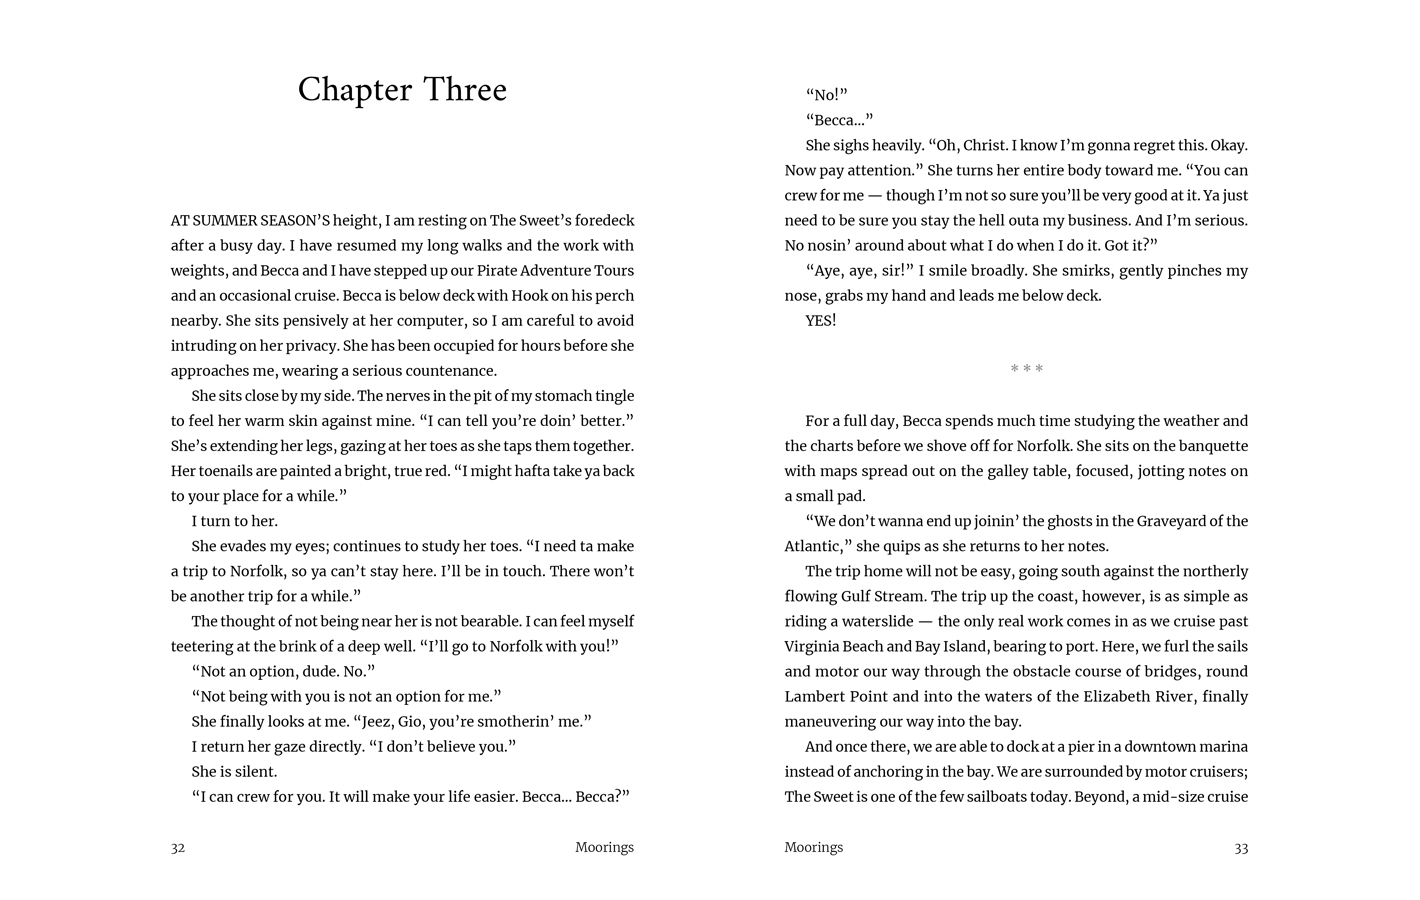 Chapter Three for Moorings